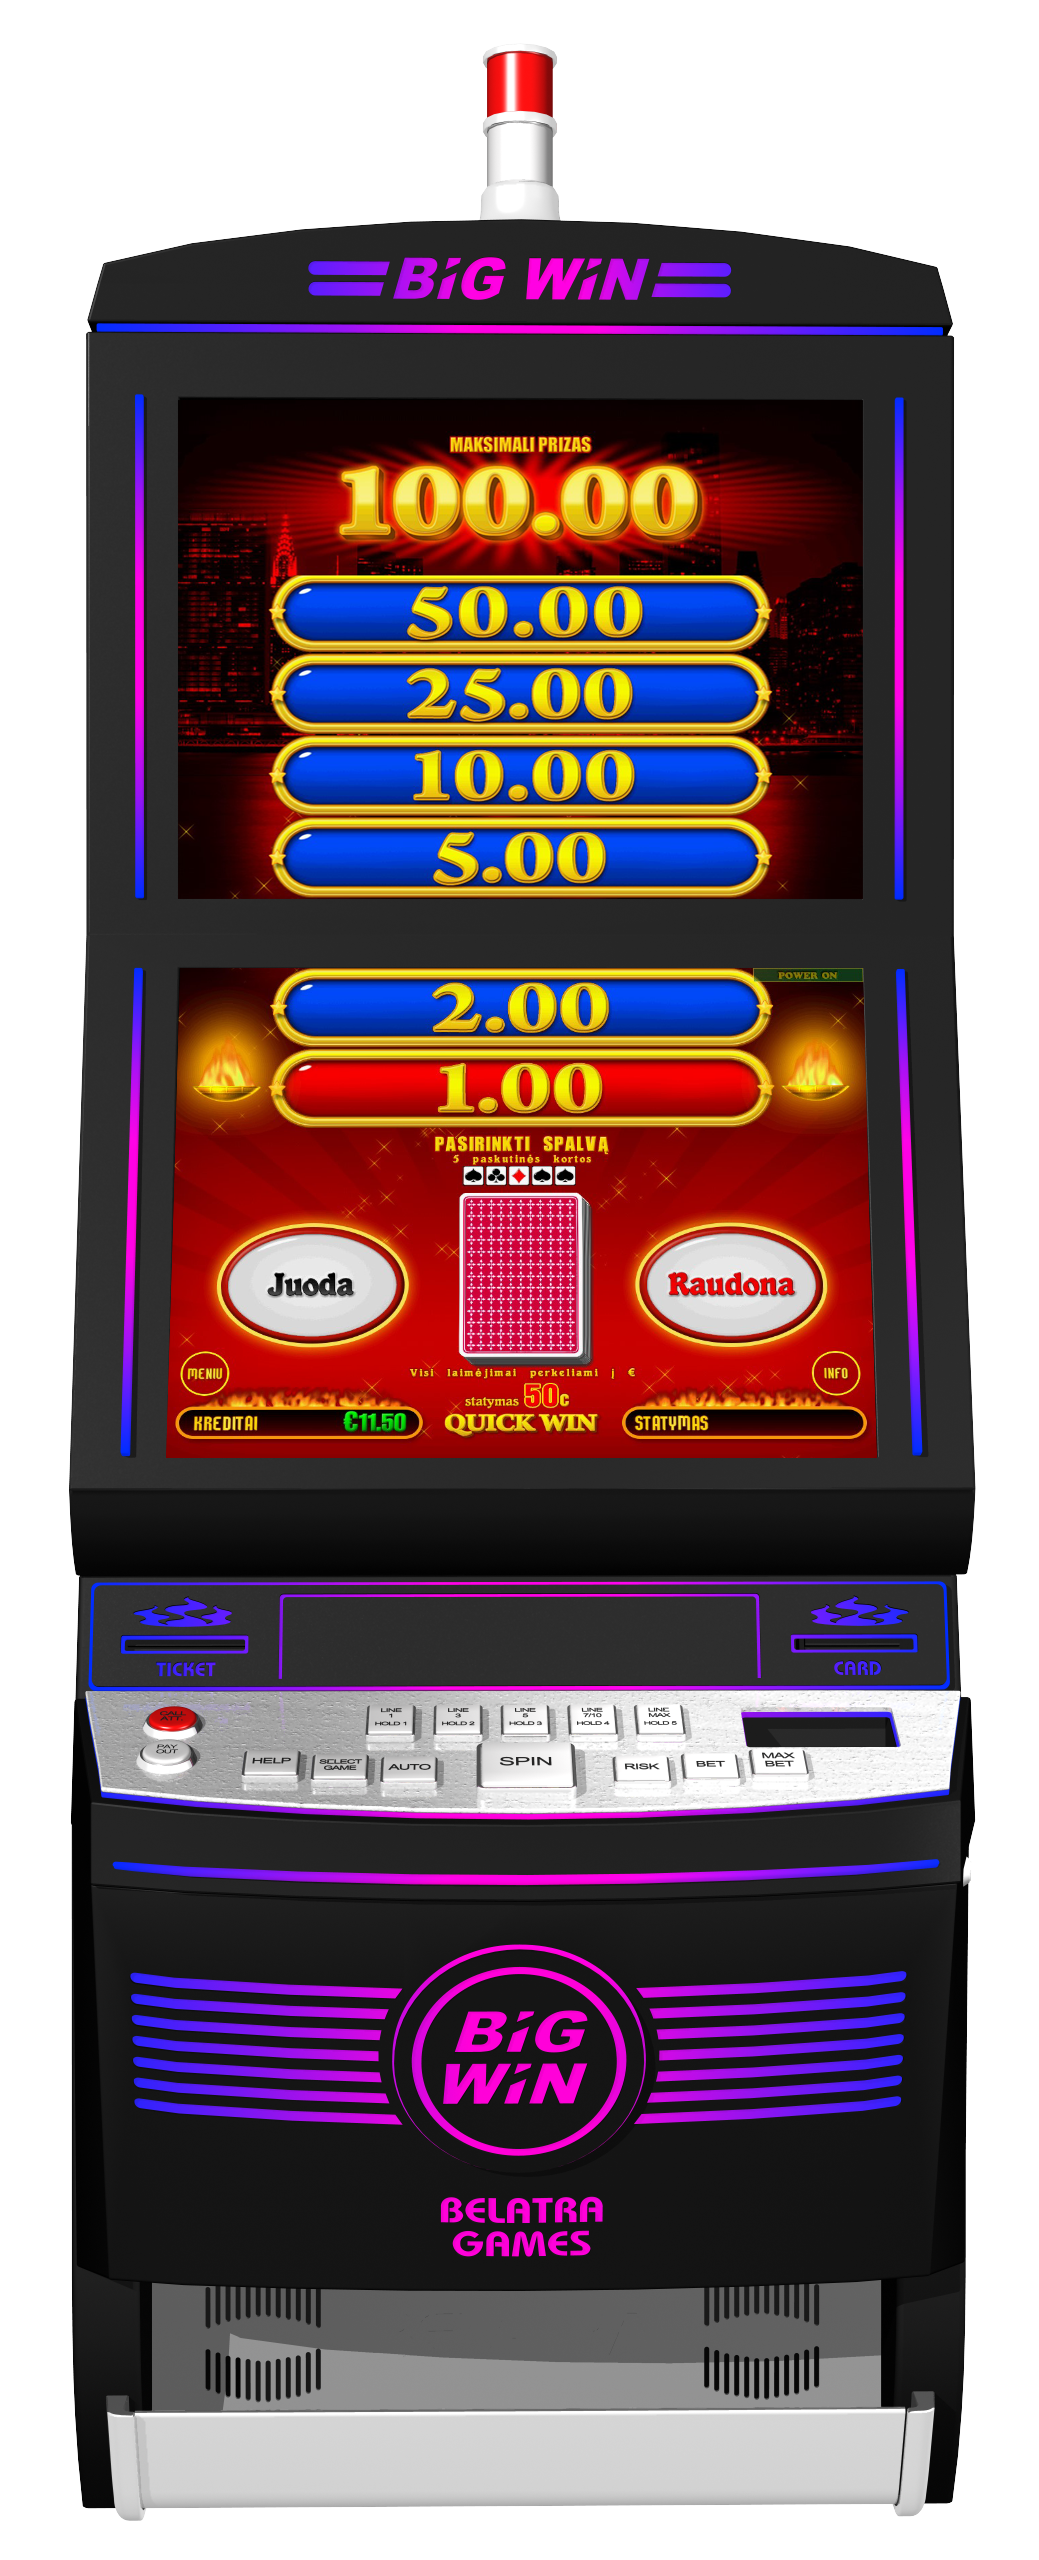 Is online casino good